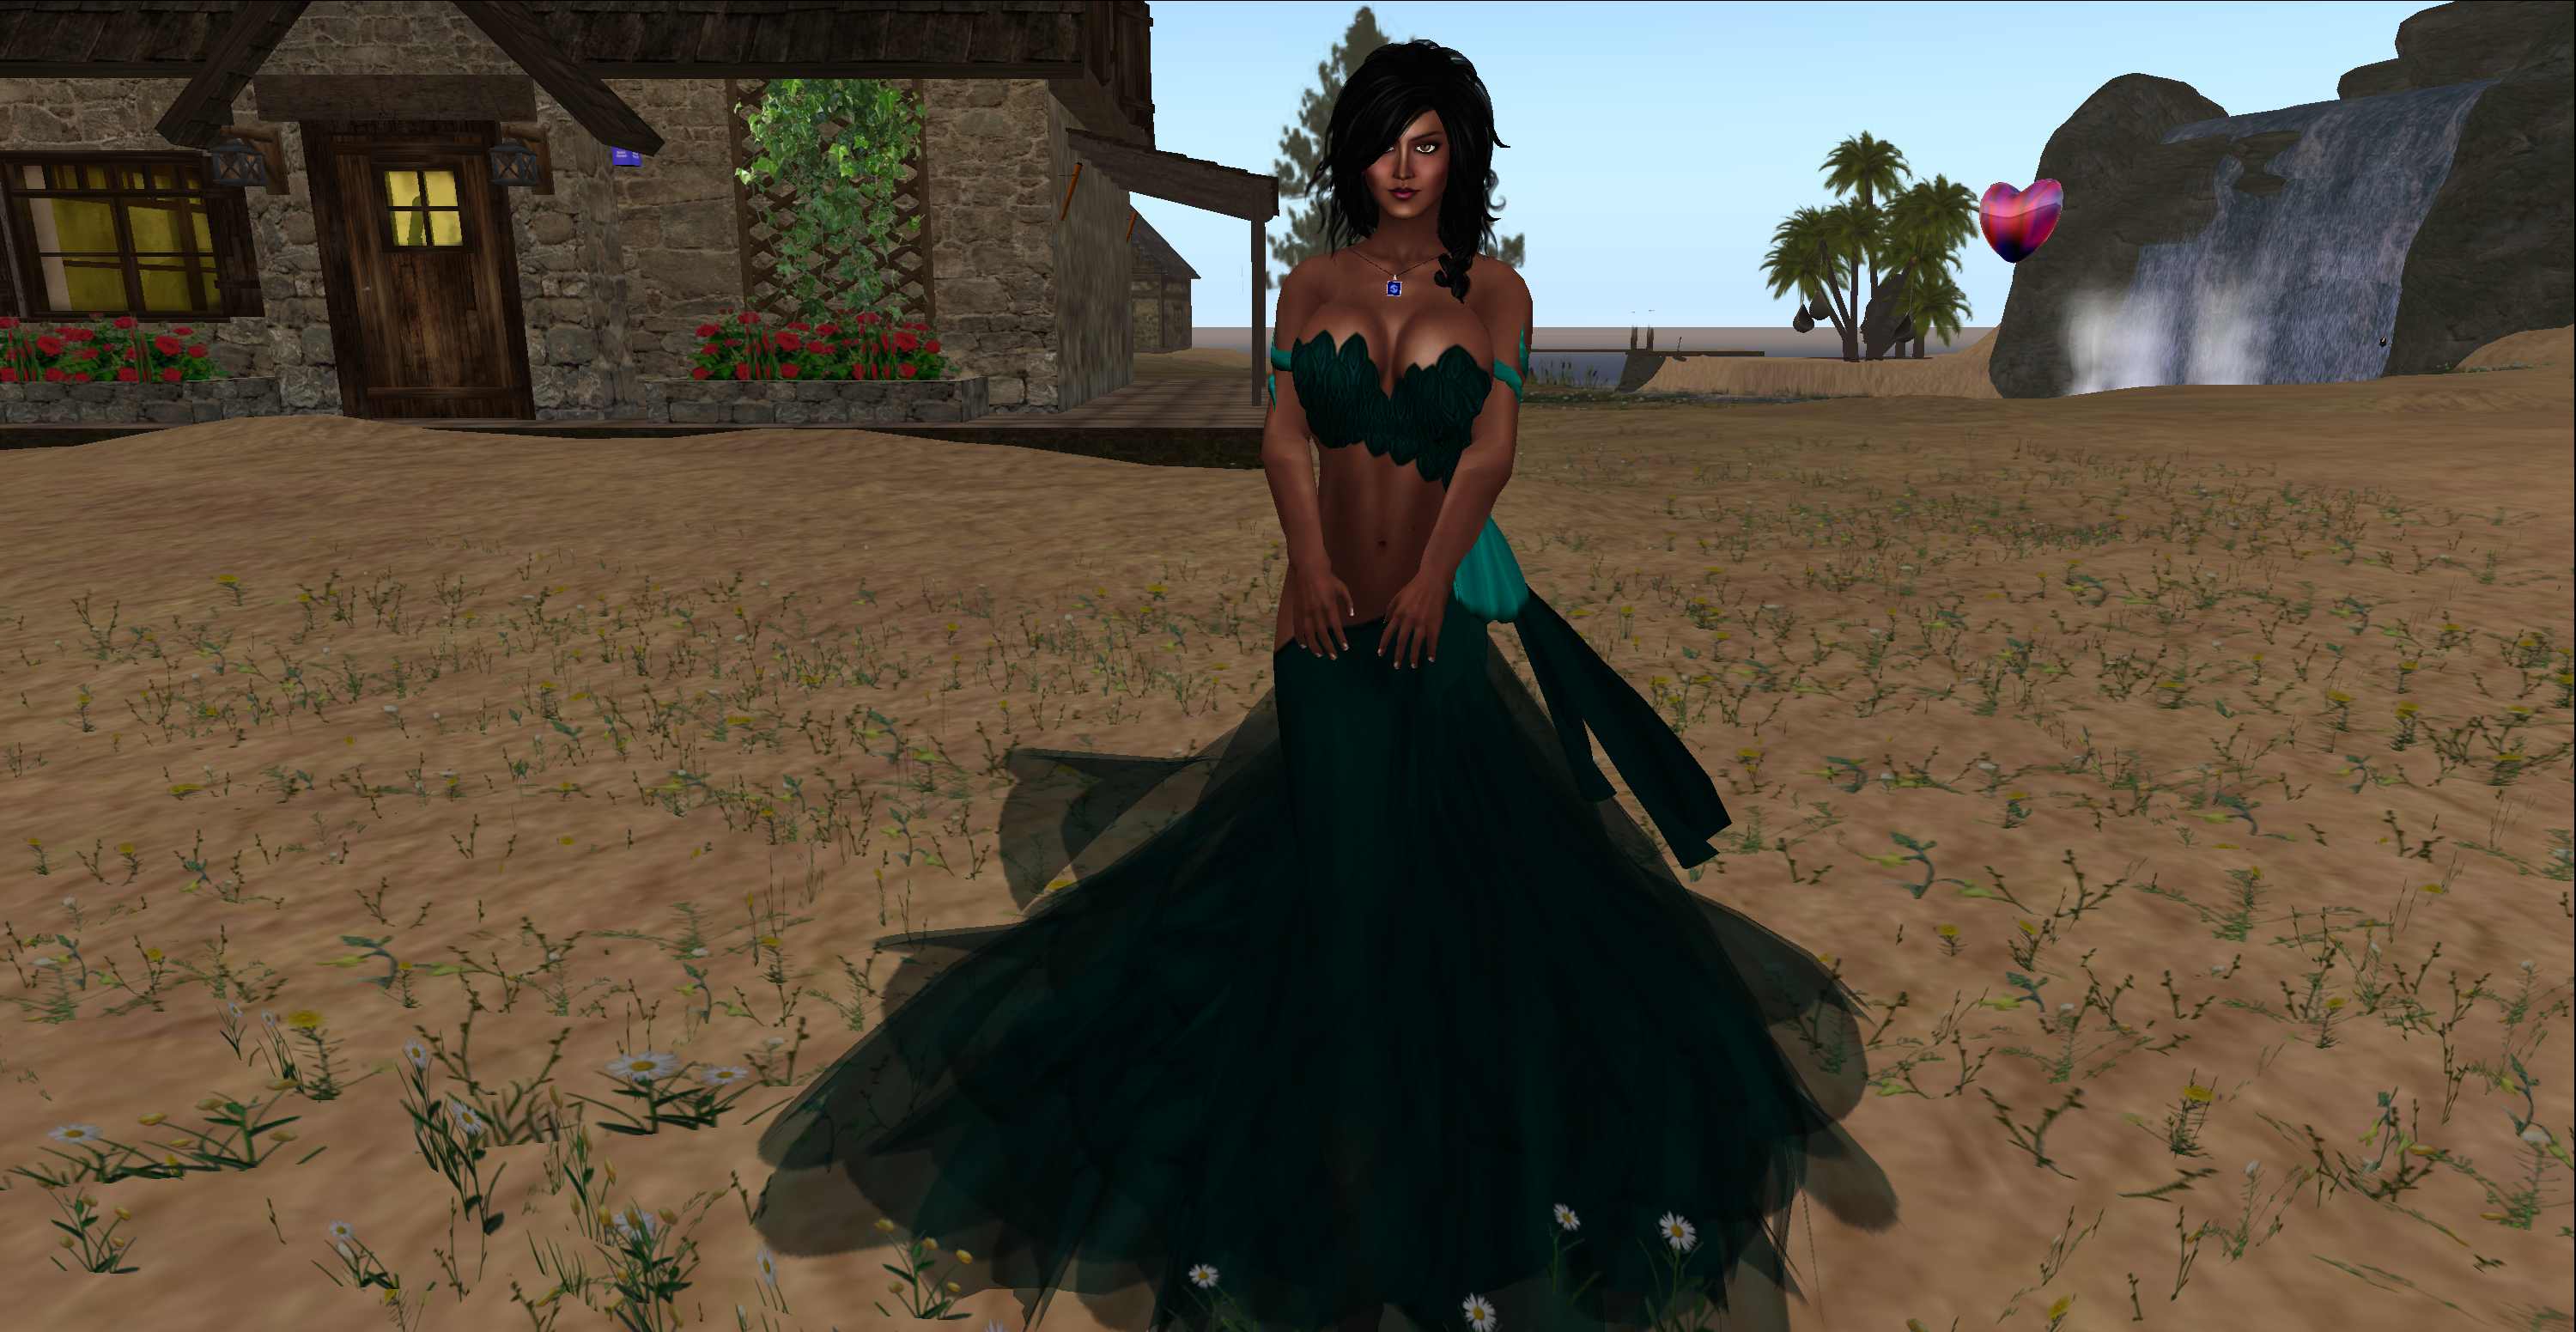 A lovely green dress I got on Sl. It's beautiful and a little risque and I love it.